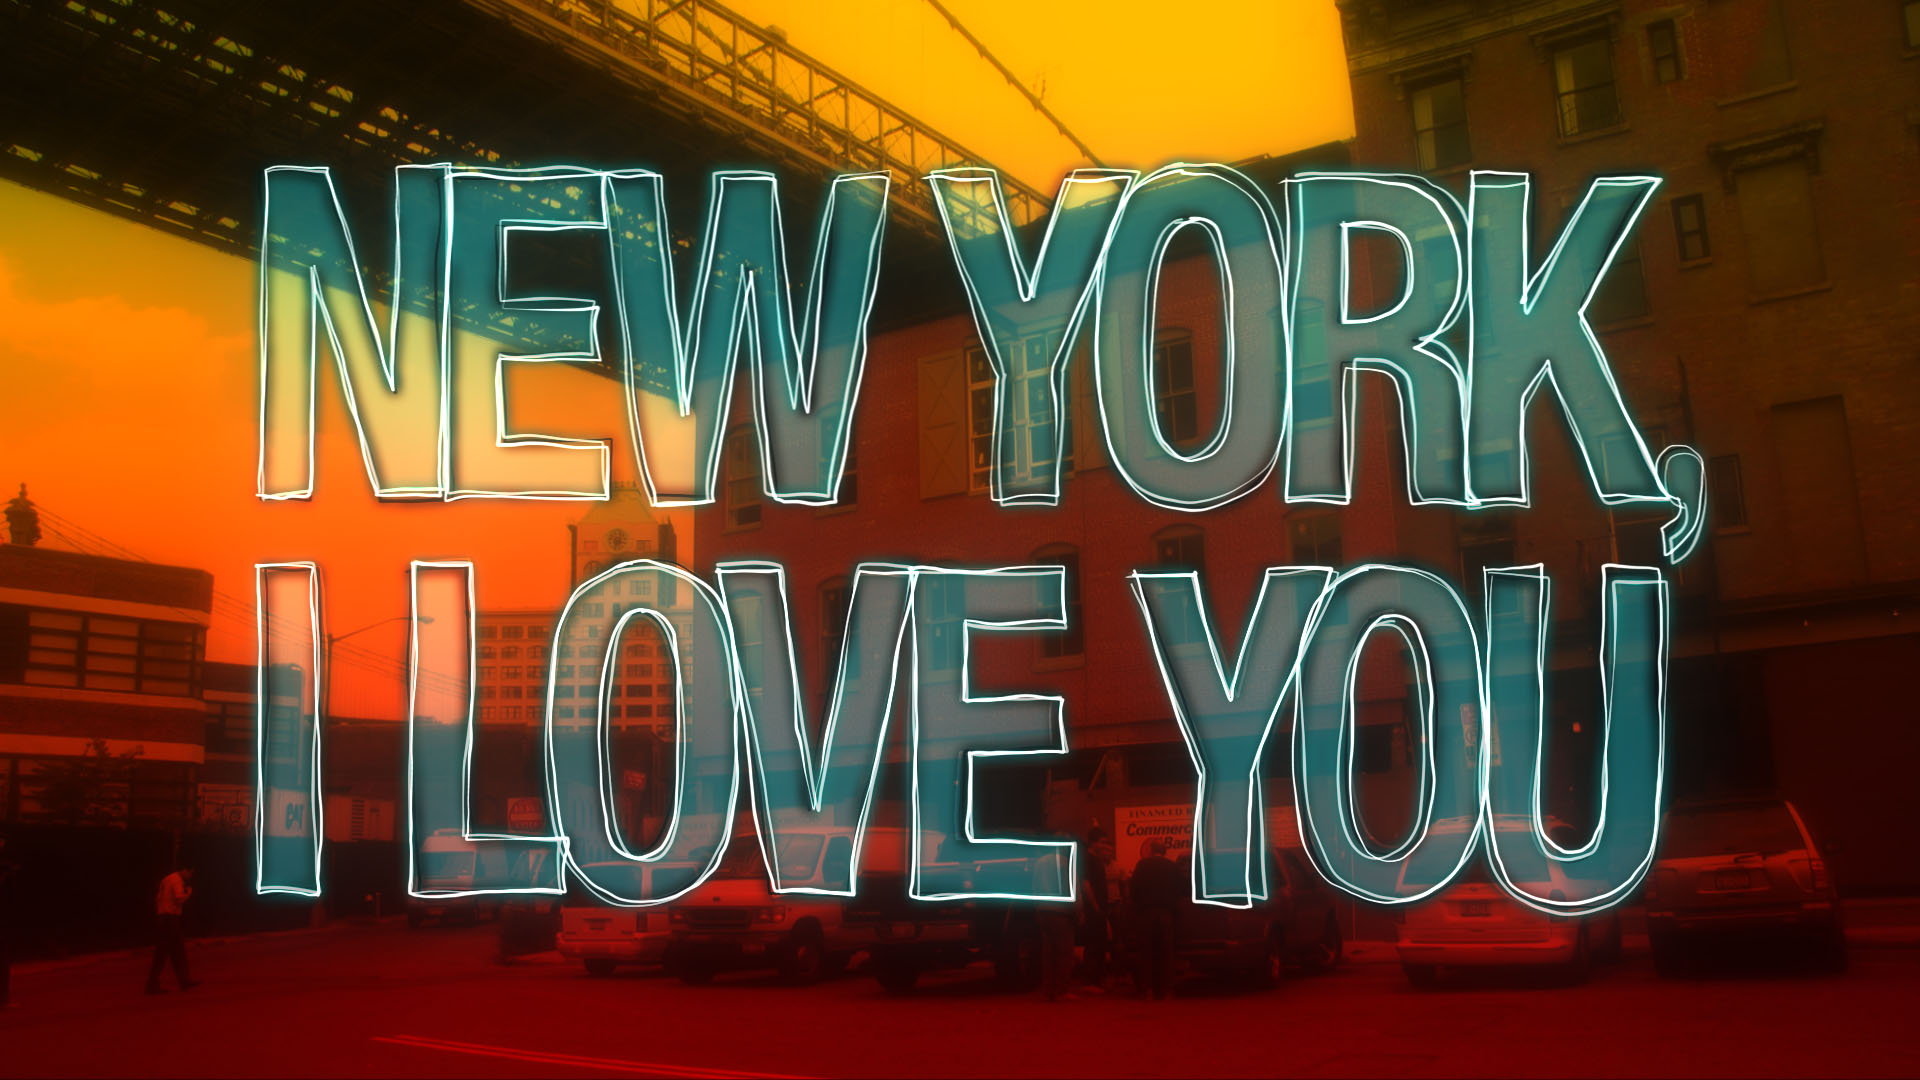 New york i love you by pj xd